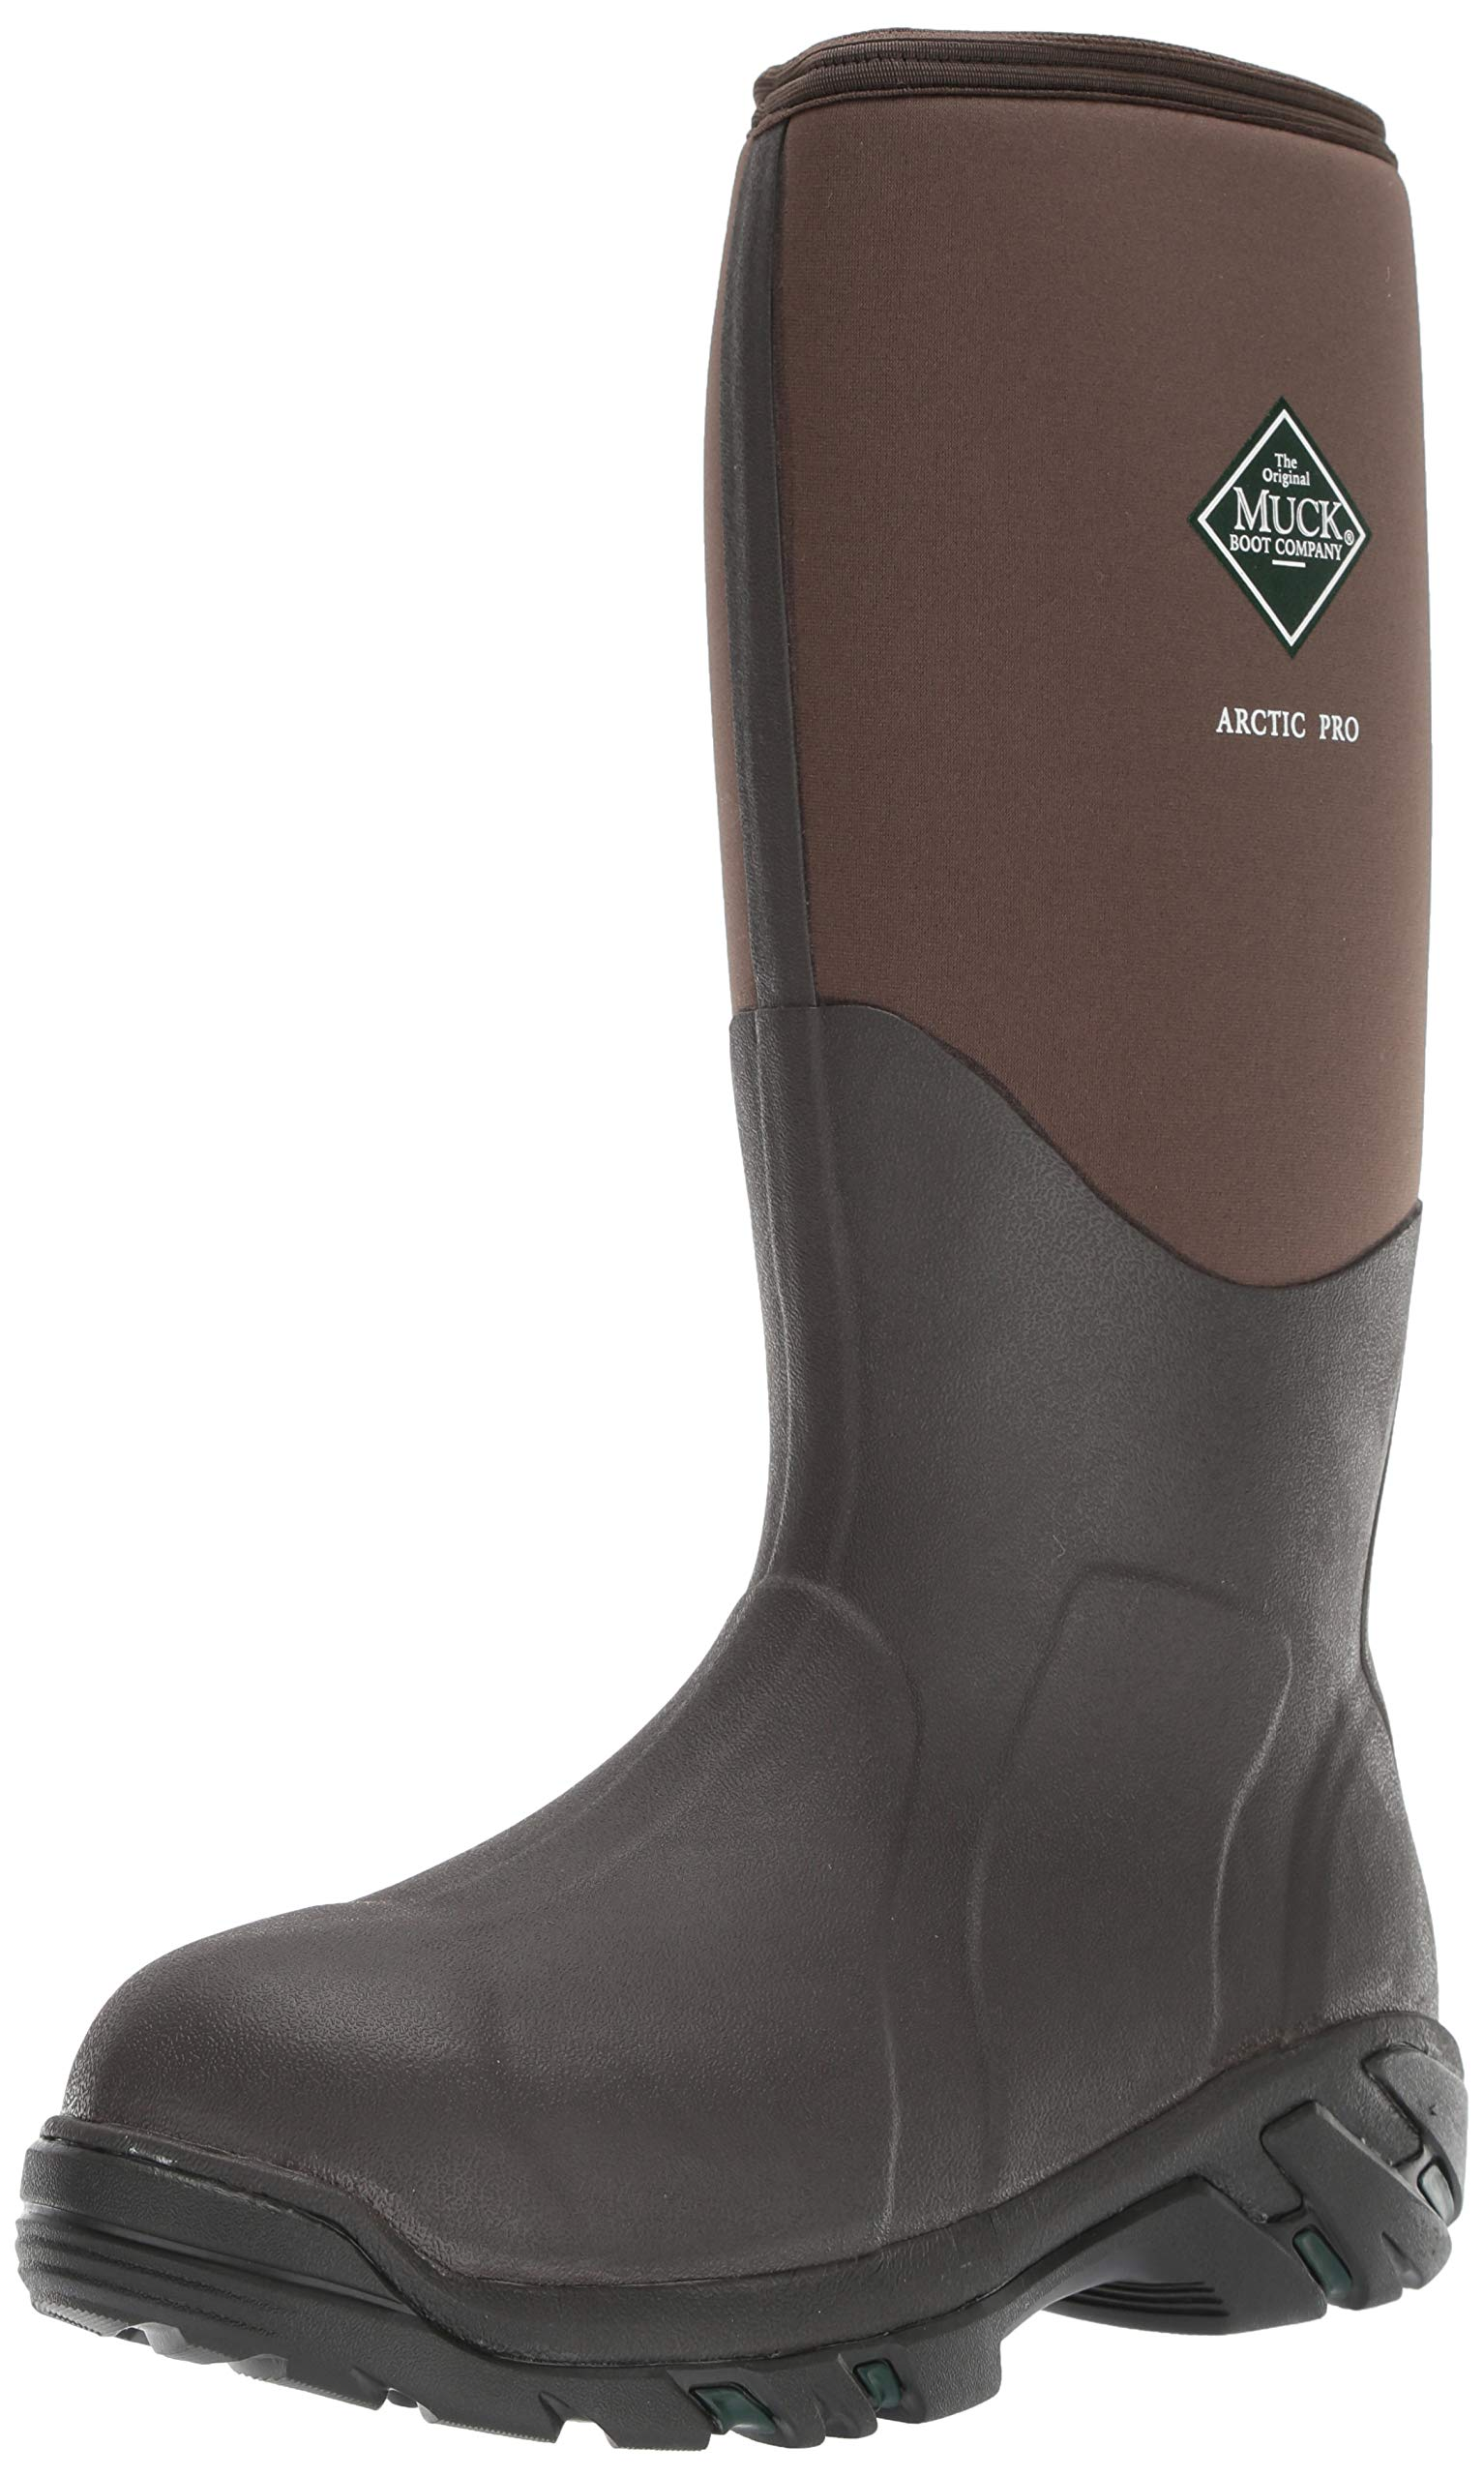 Muck Arctic Pro Tall Rubber Insulated Extreme Conditions Men's Hunting Boots, Bark, 7 M US by Muck Boot